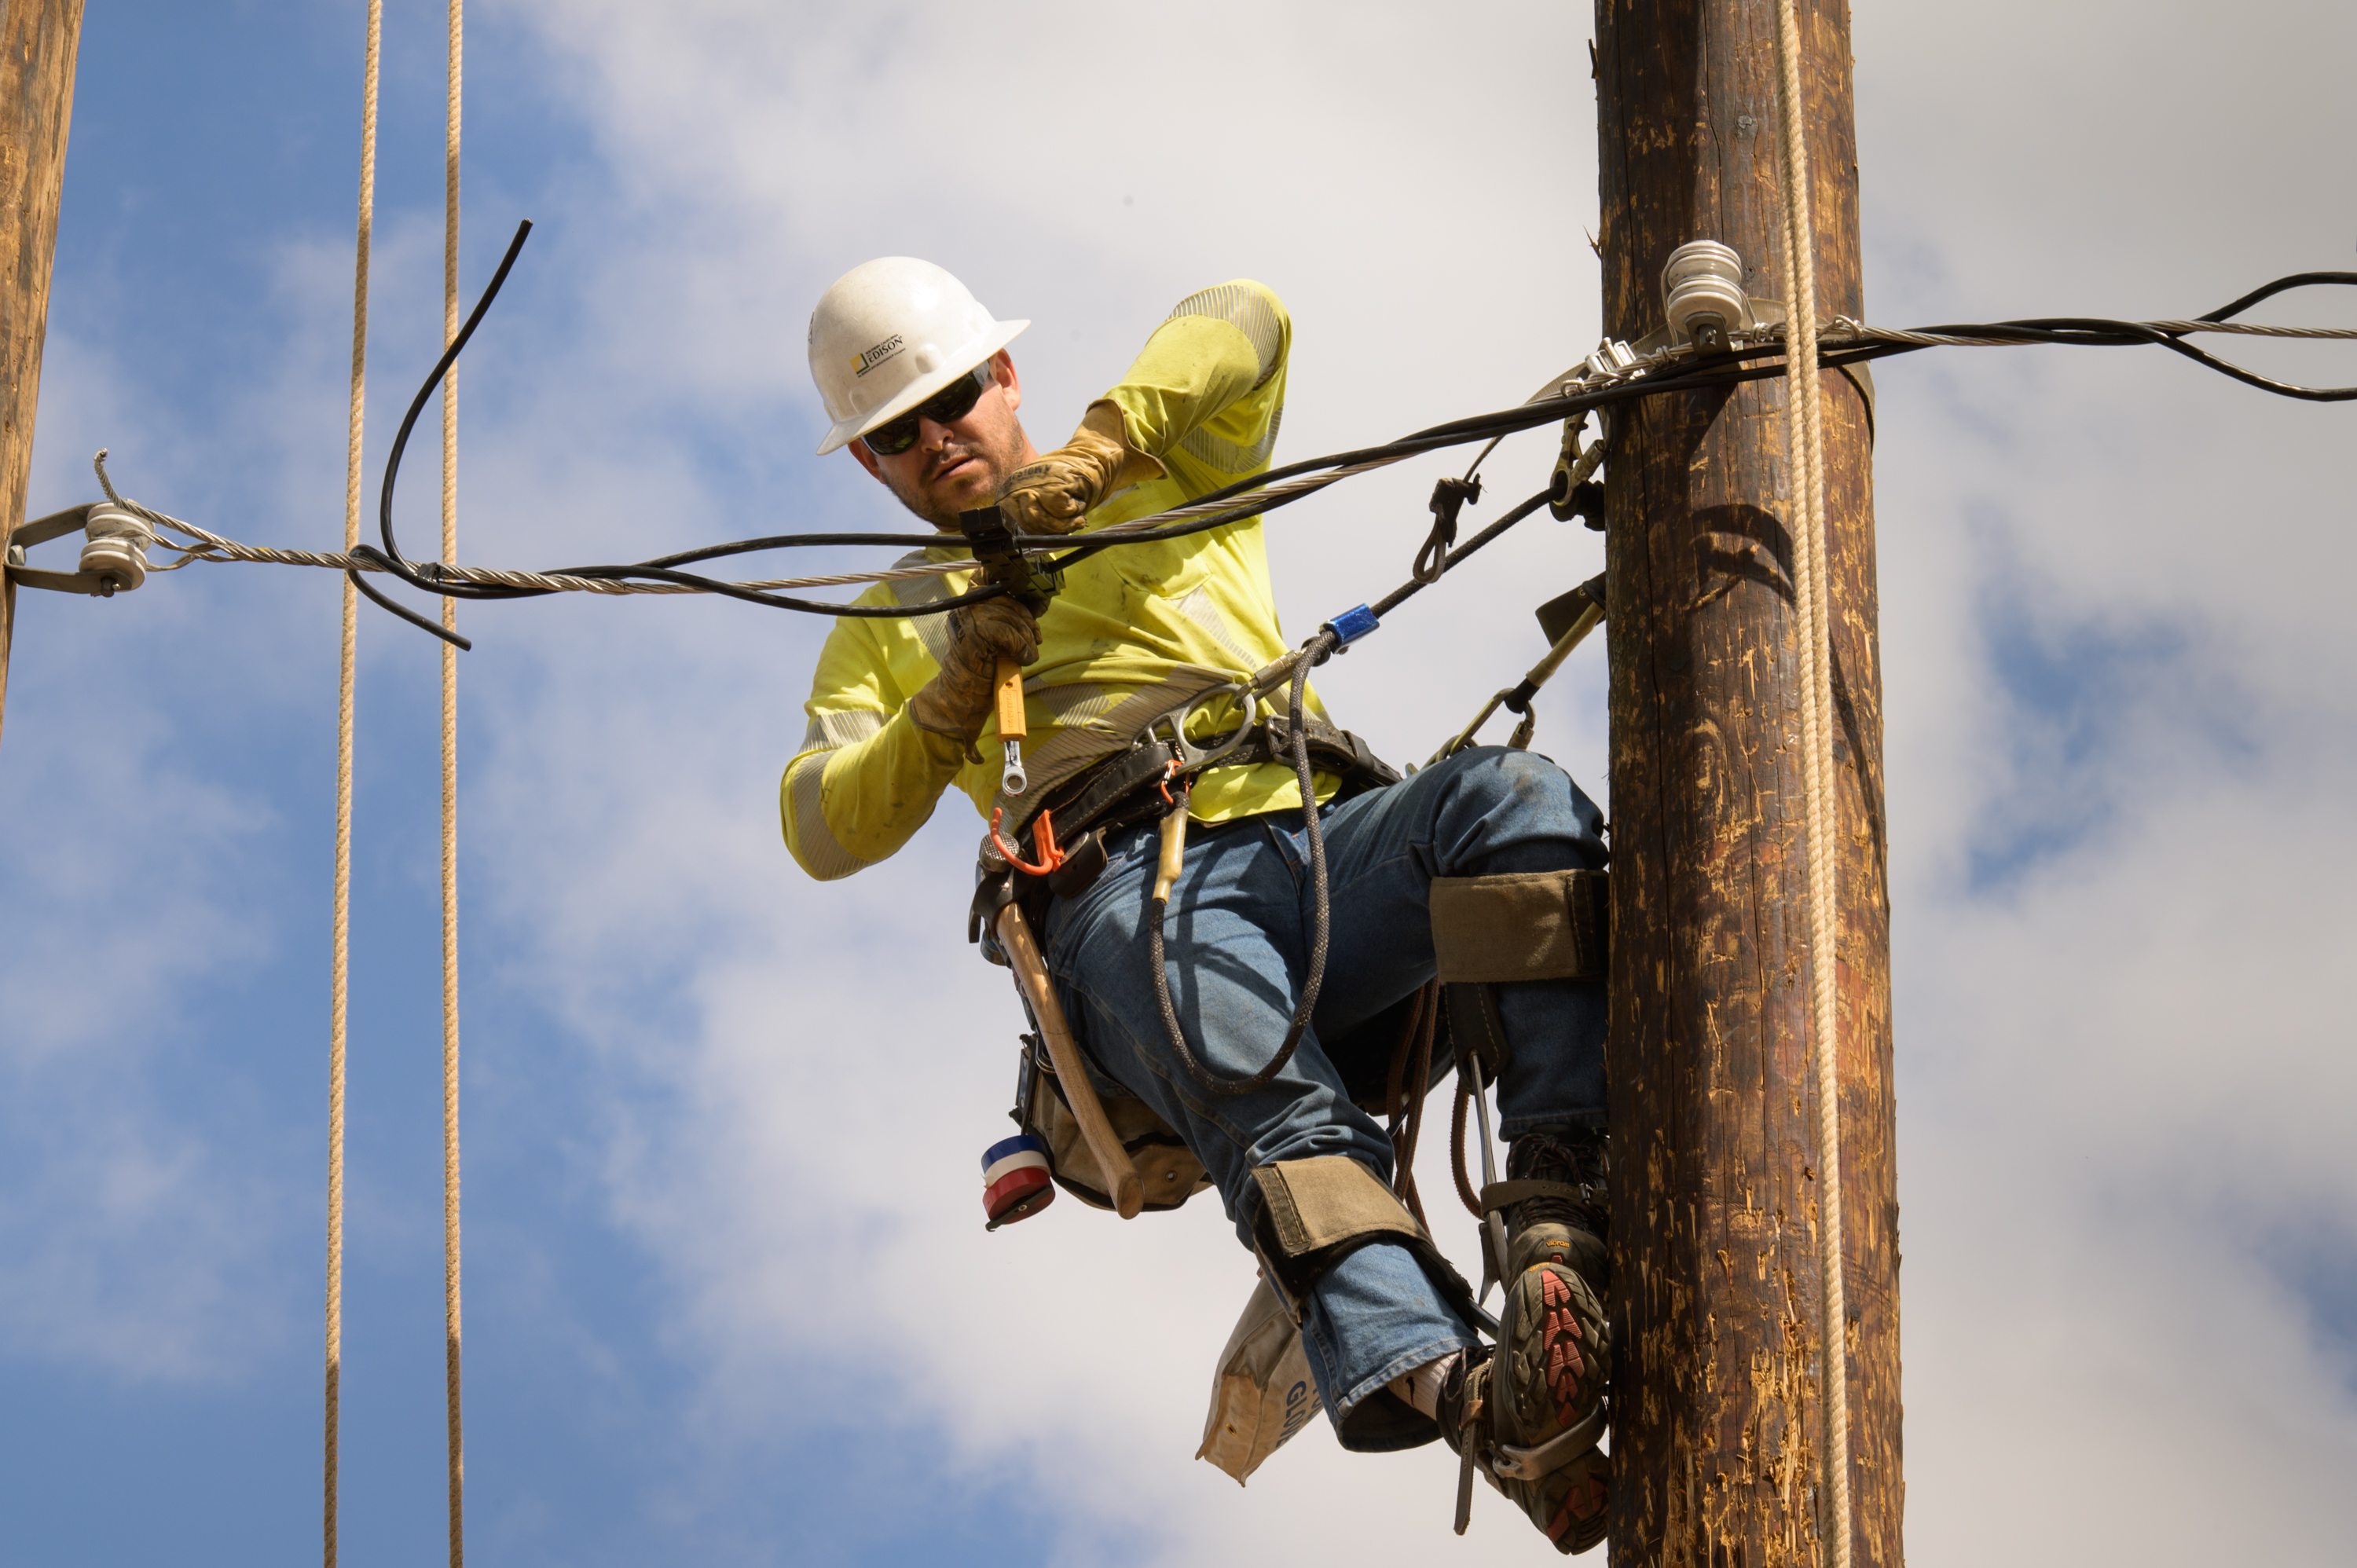 An apprentice works at SCE's lineman training center in Chino.